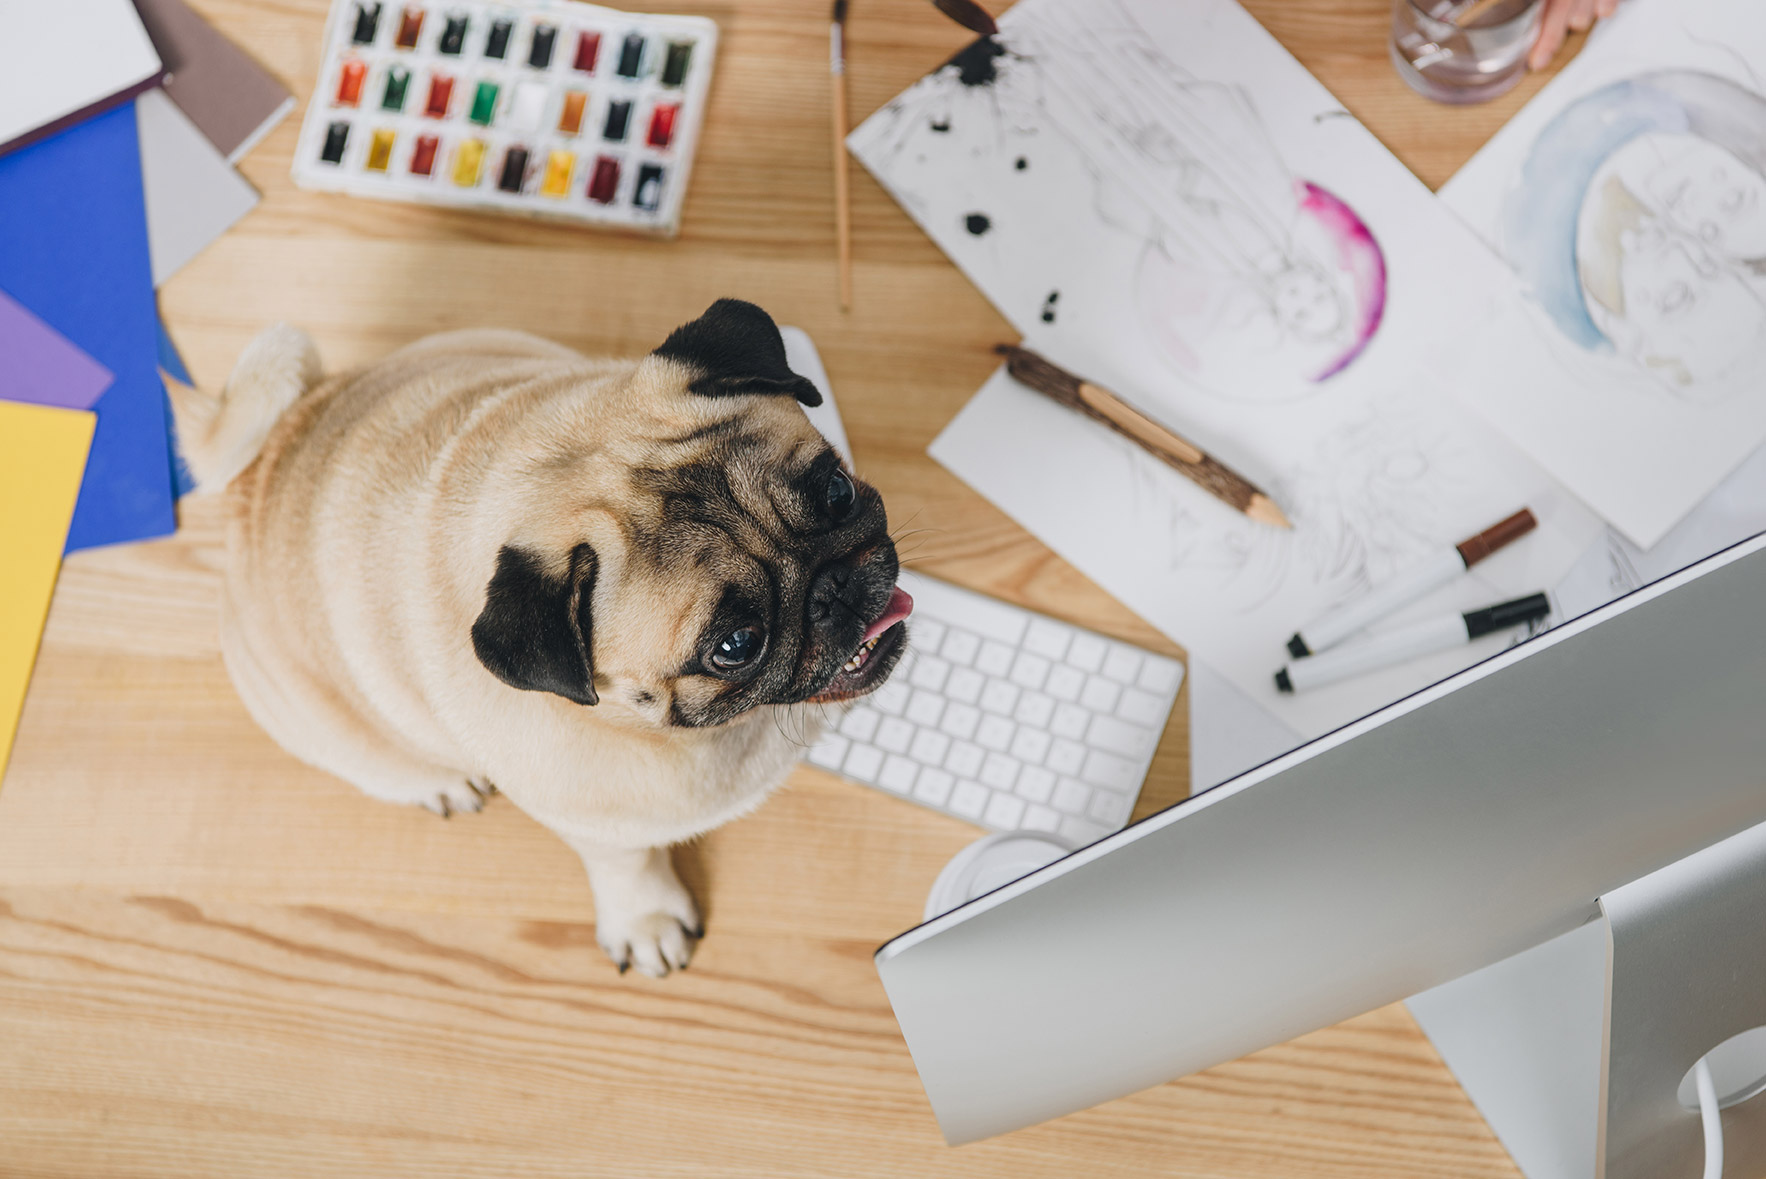 Work stress - how to deal with it when self-employed, image of a pug on the table | Crunch